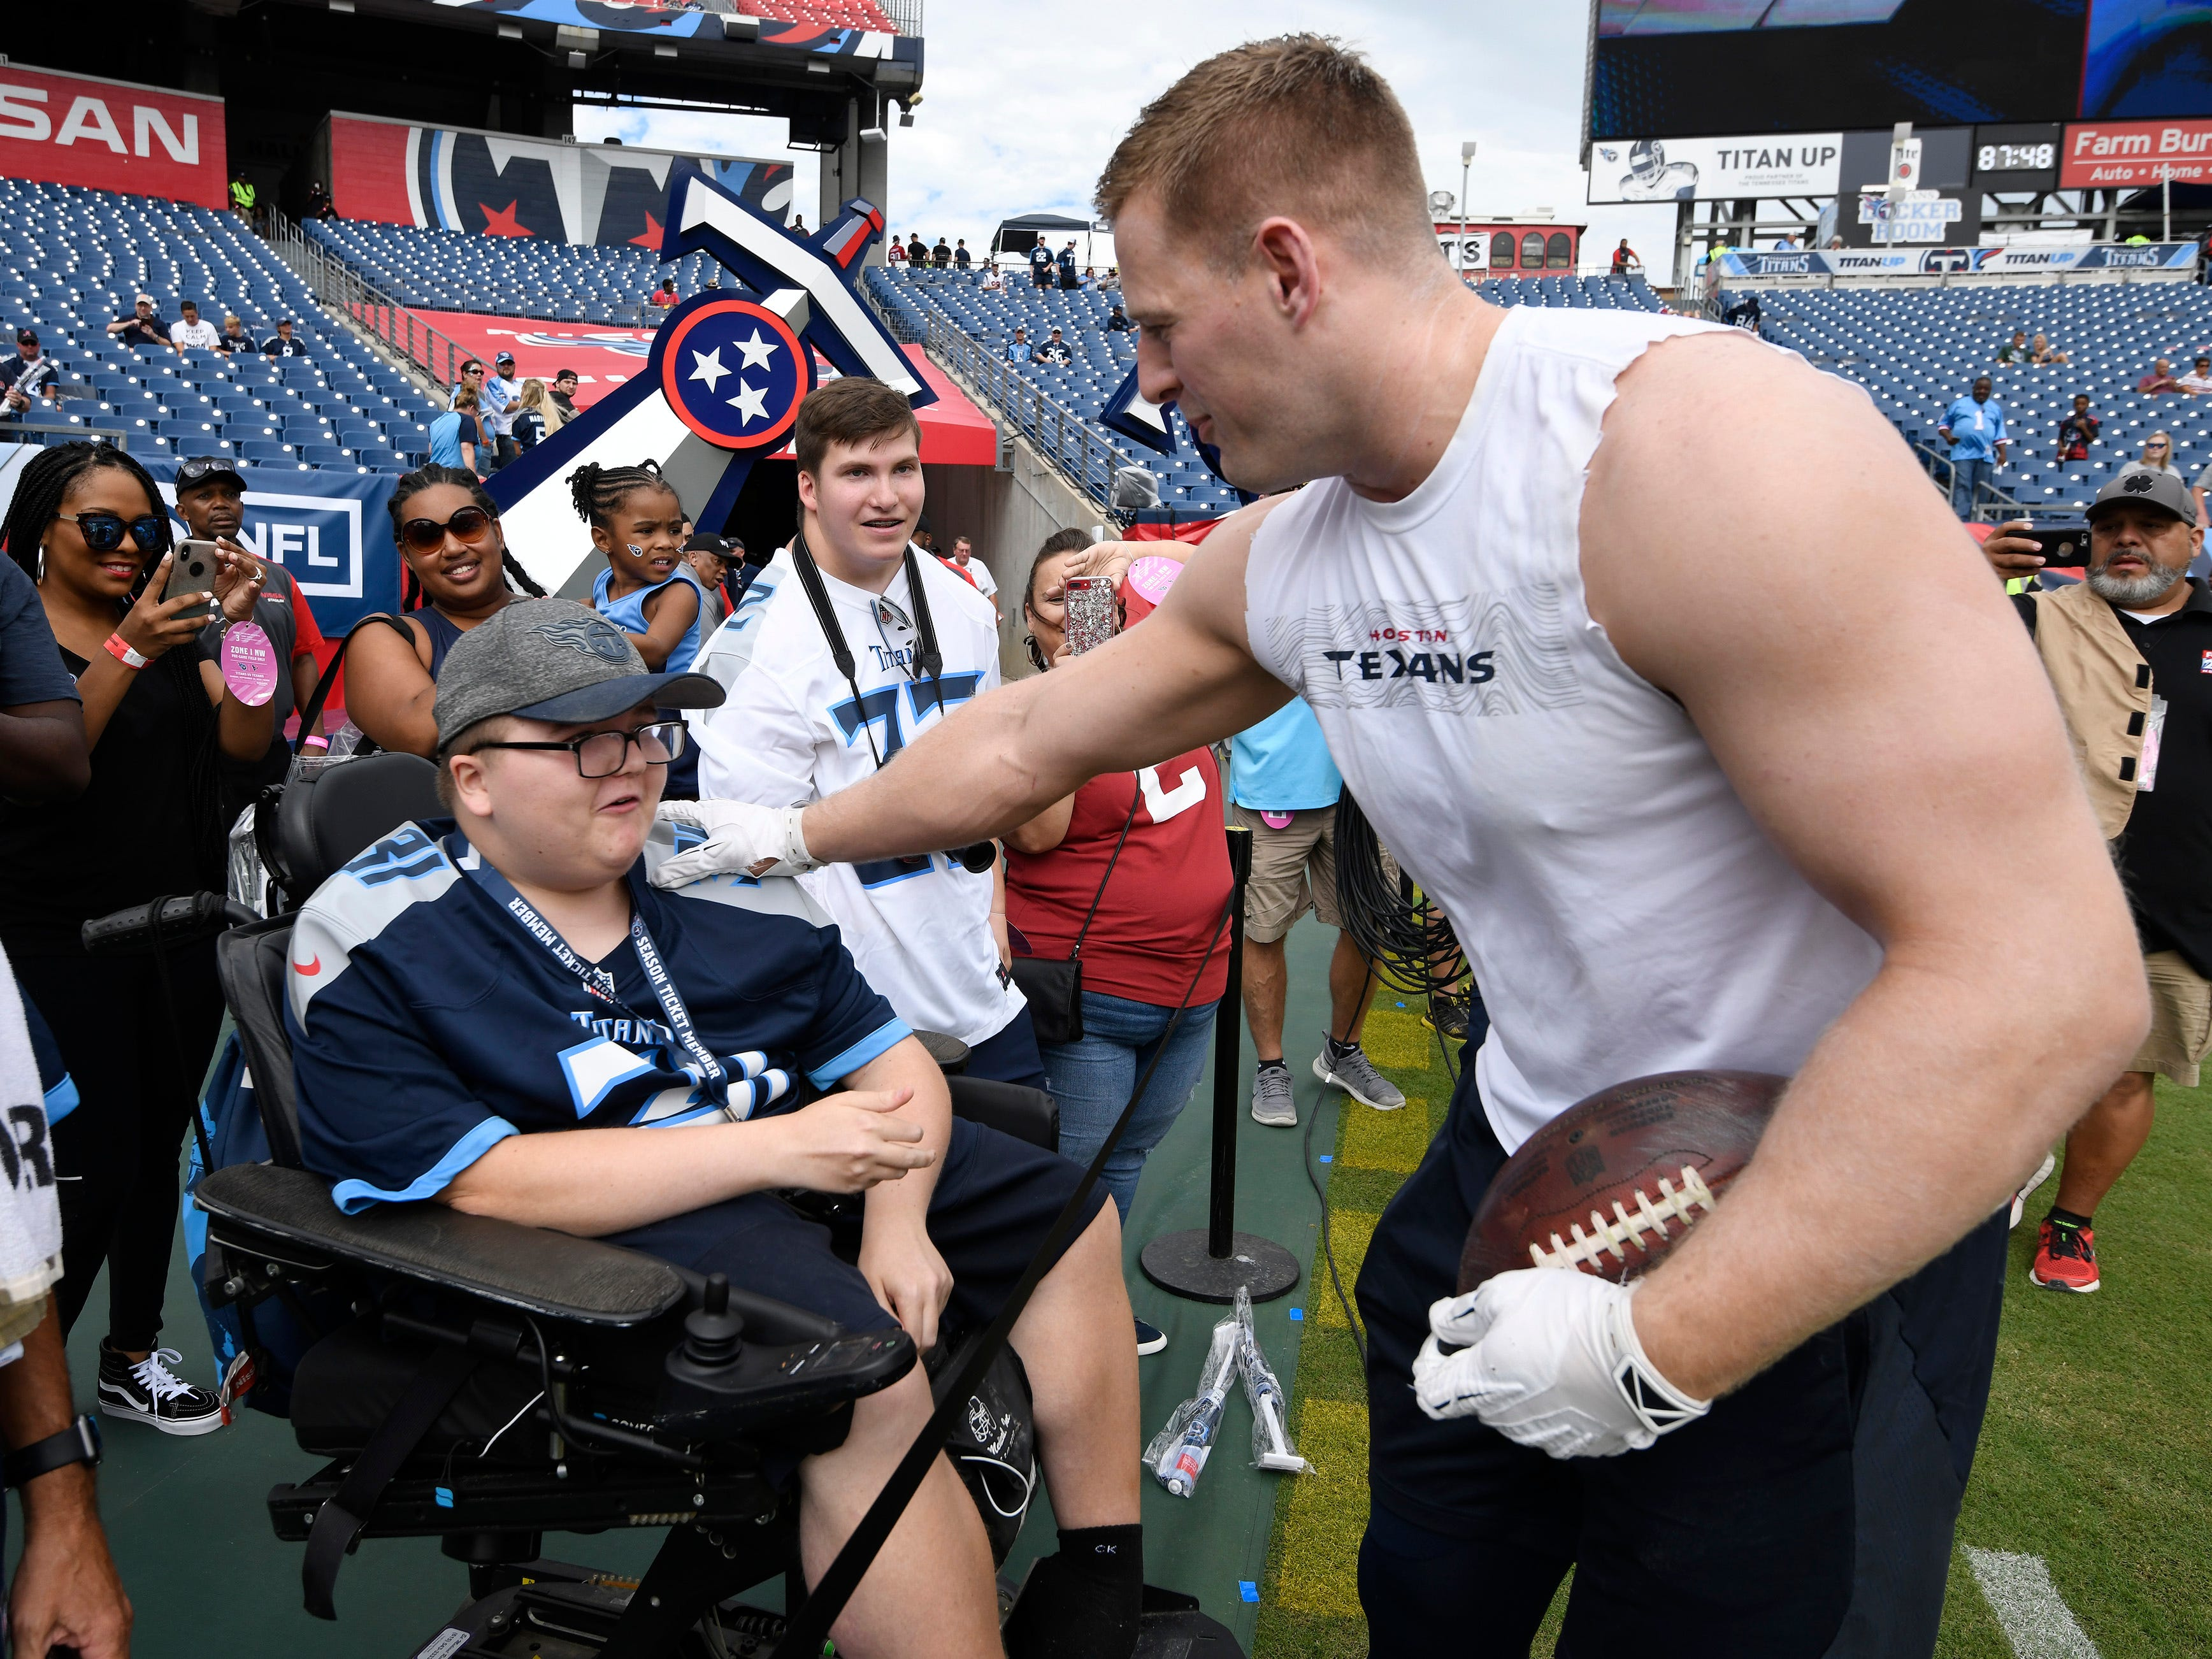 Texans defensive end J.J. Watt (99) greets Cameron Parker before the game at Nissan Stadium Sunday, Sept. 16, 2018, in Nashville, Tenn.